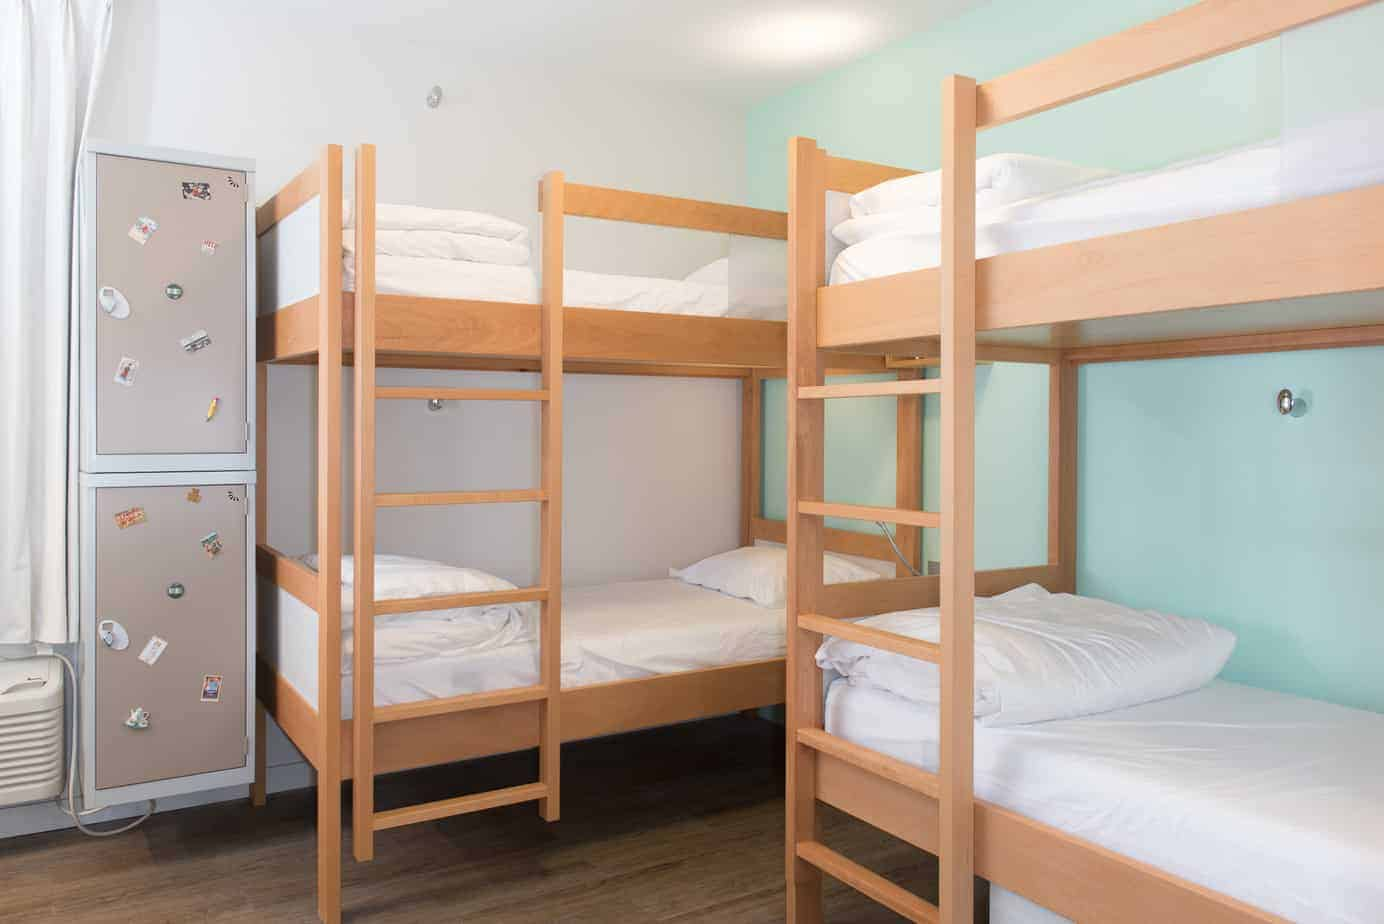 standard-quad-room-6-the-quisby-new-orleans-hostel